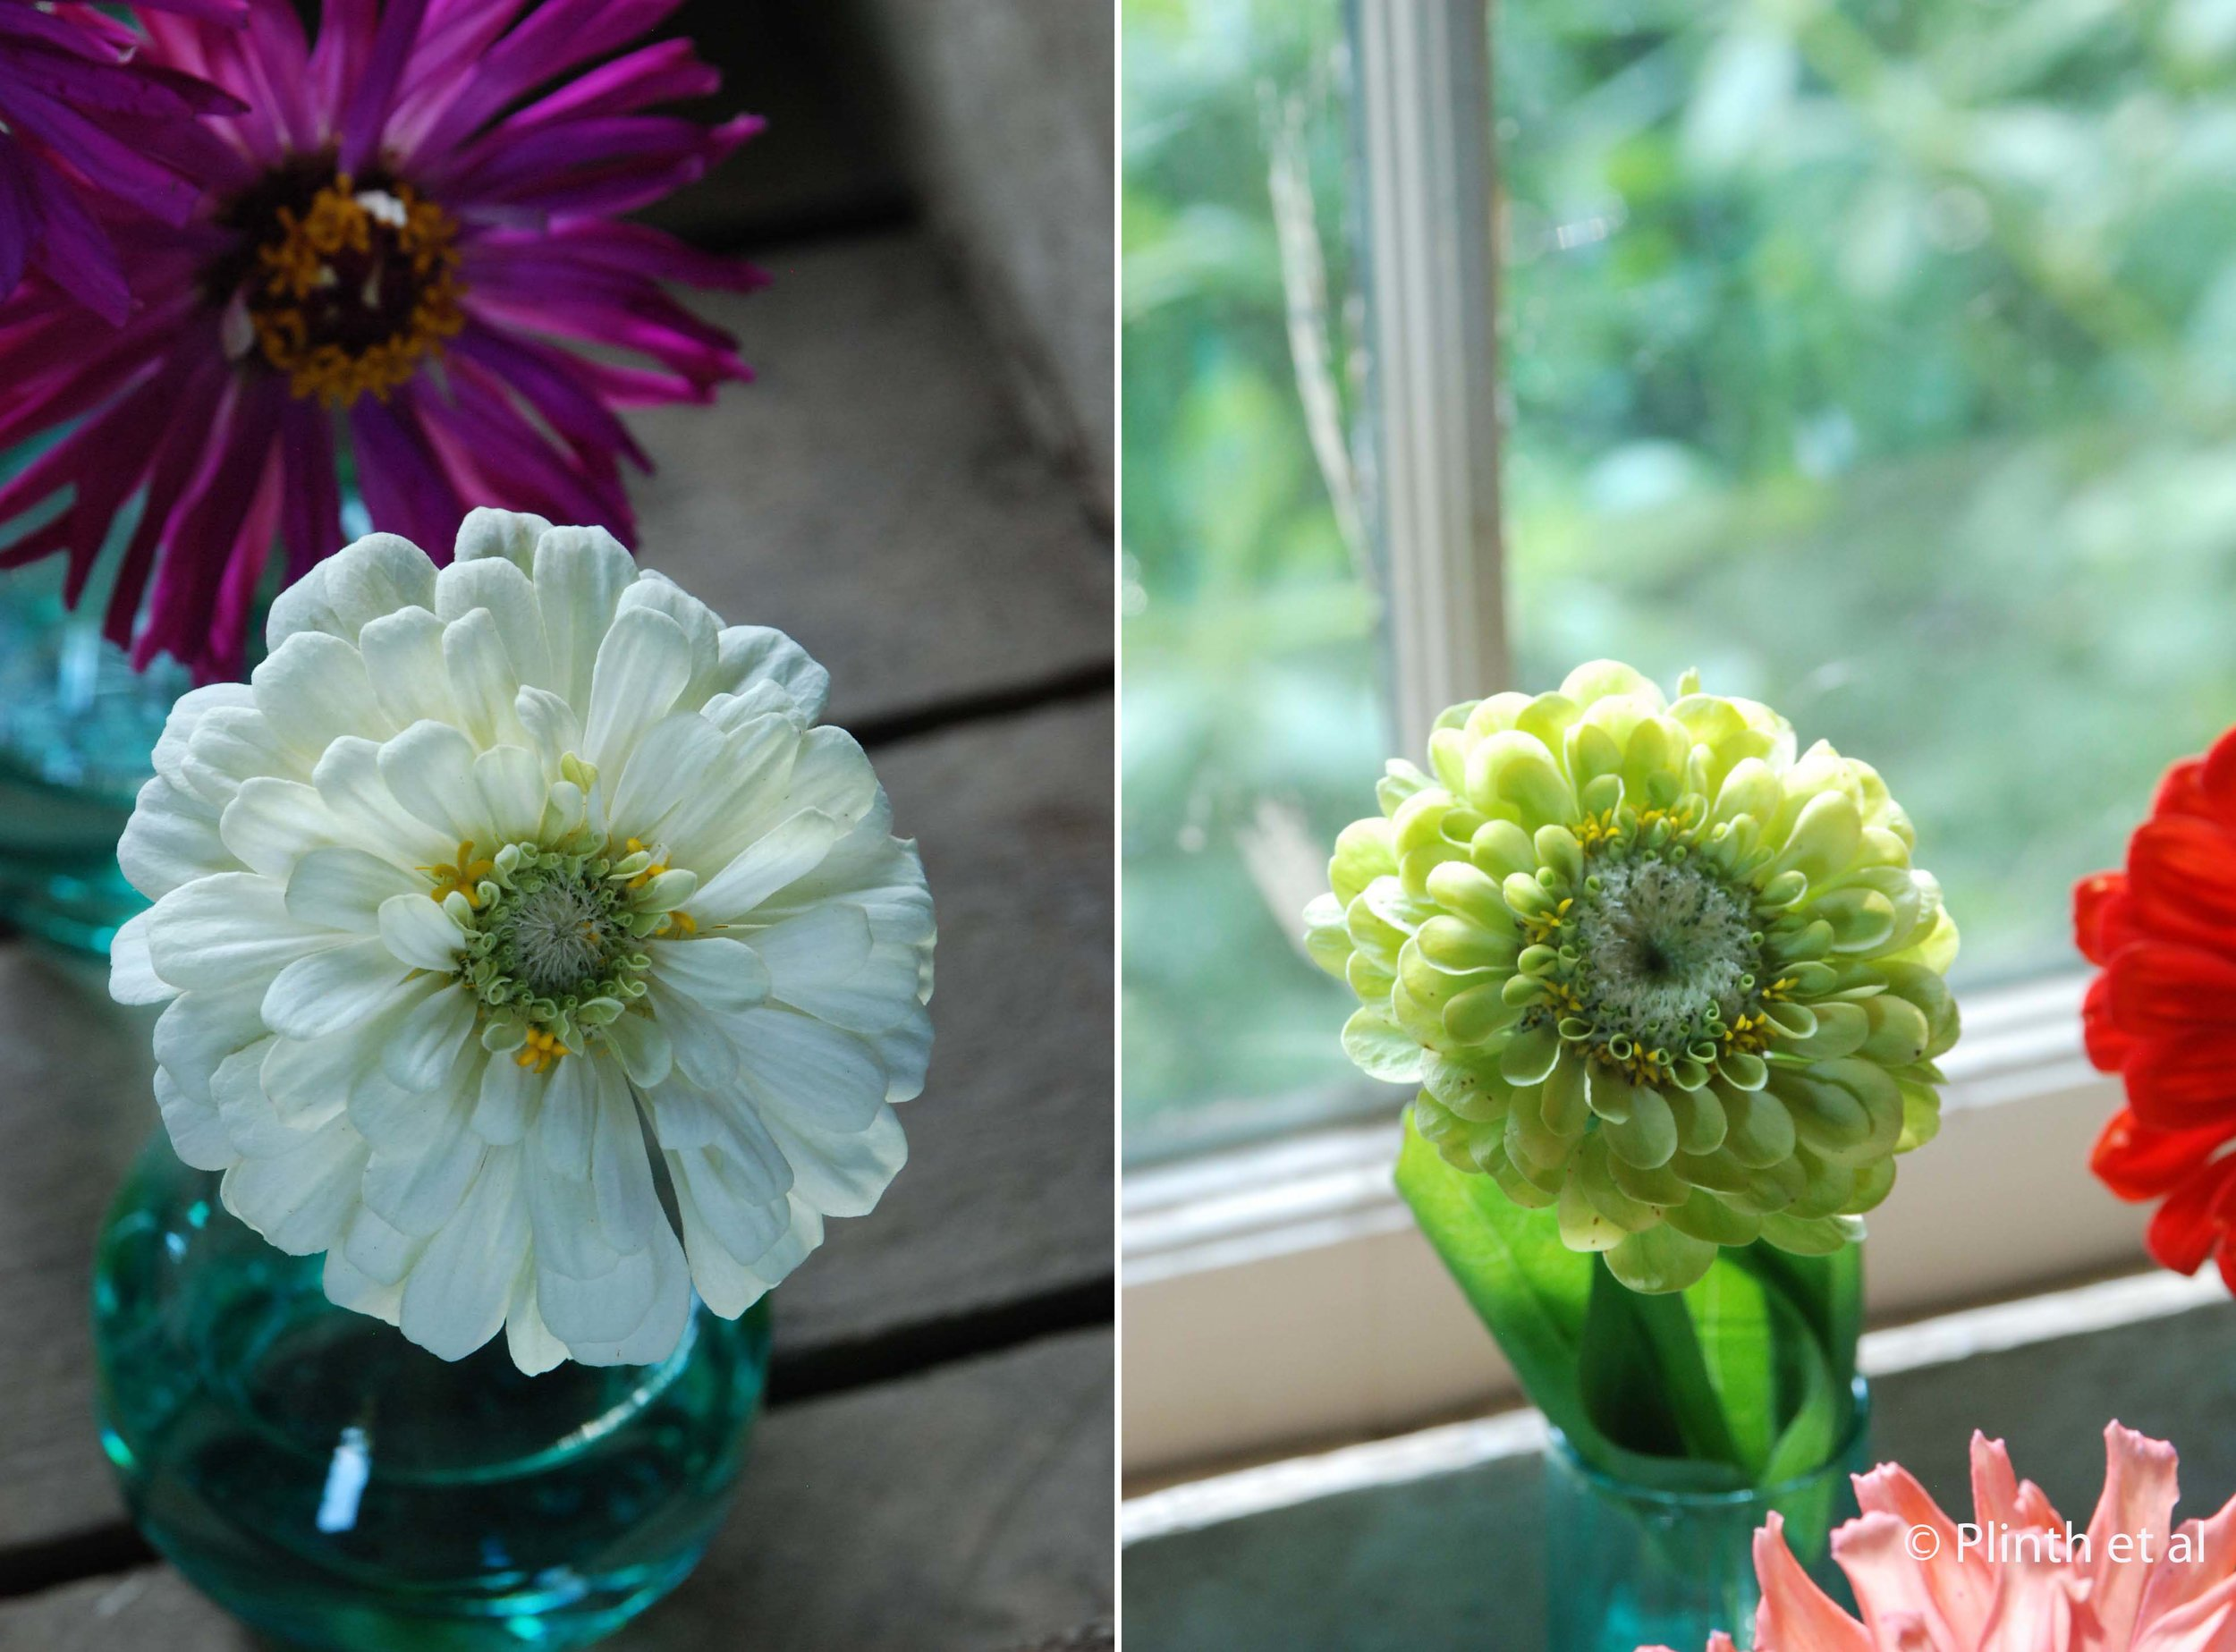 Zinnia 'Polar Bear' (left); Zinnia 'Envy' (right)